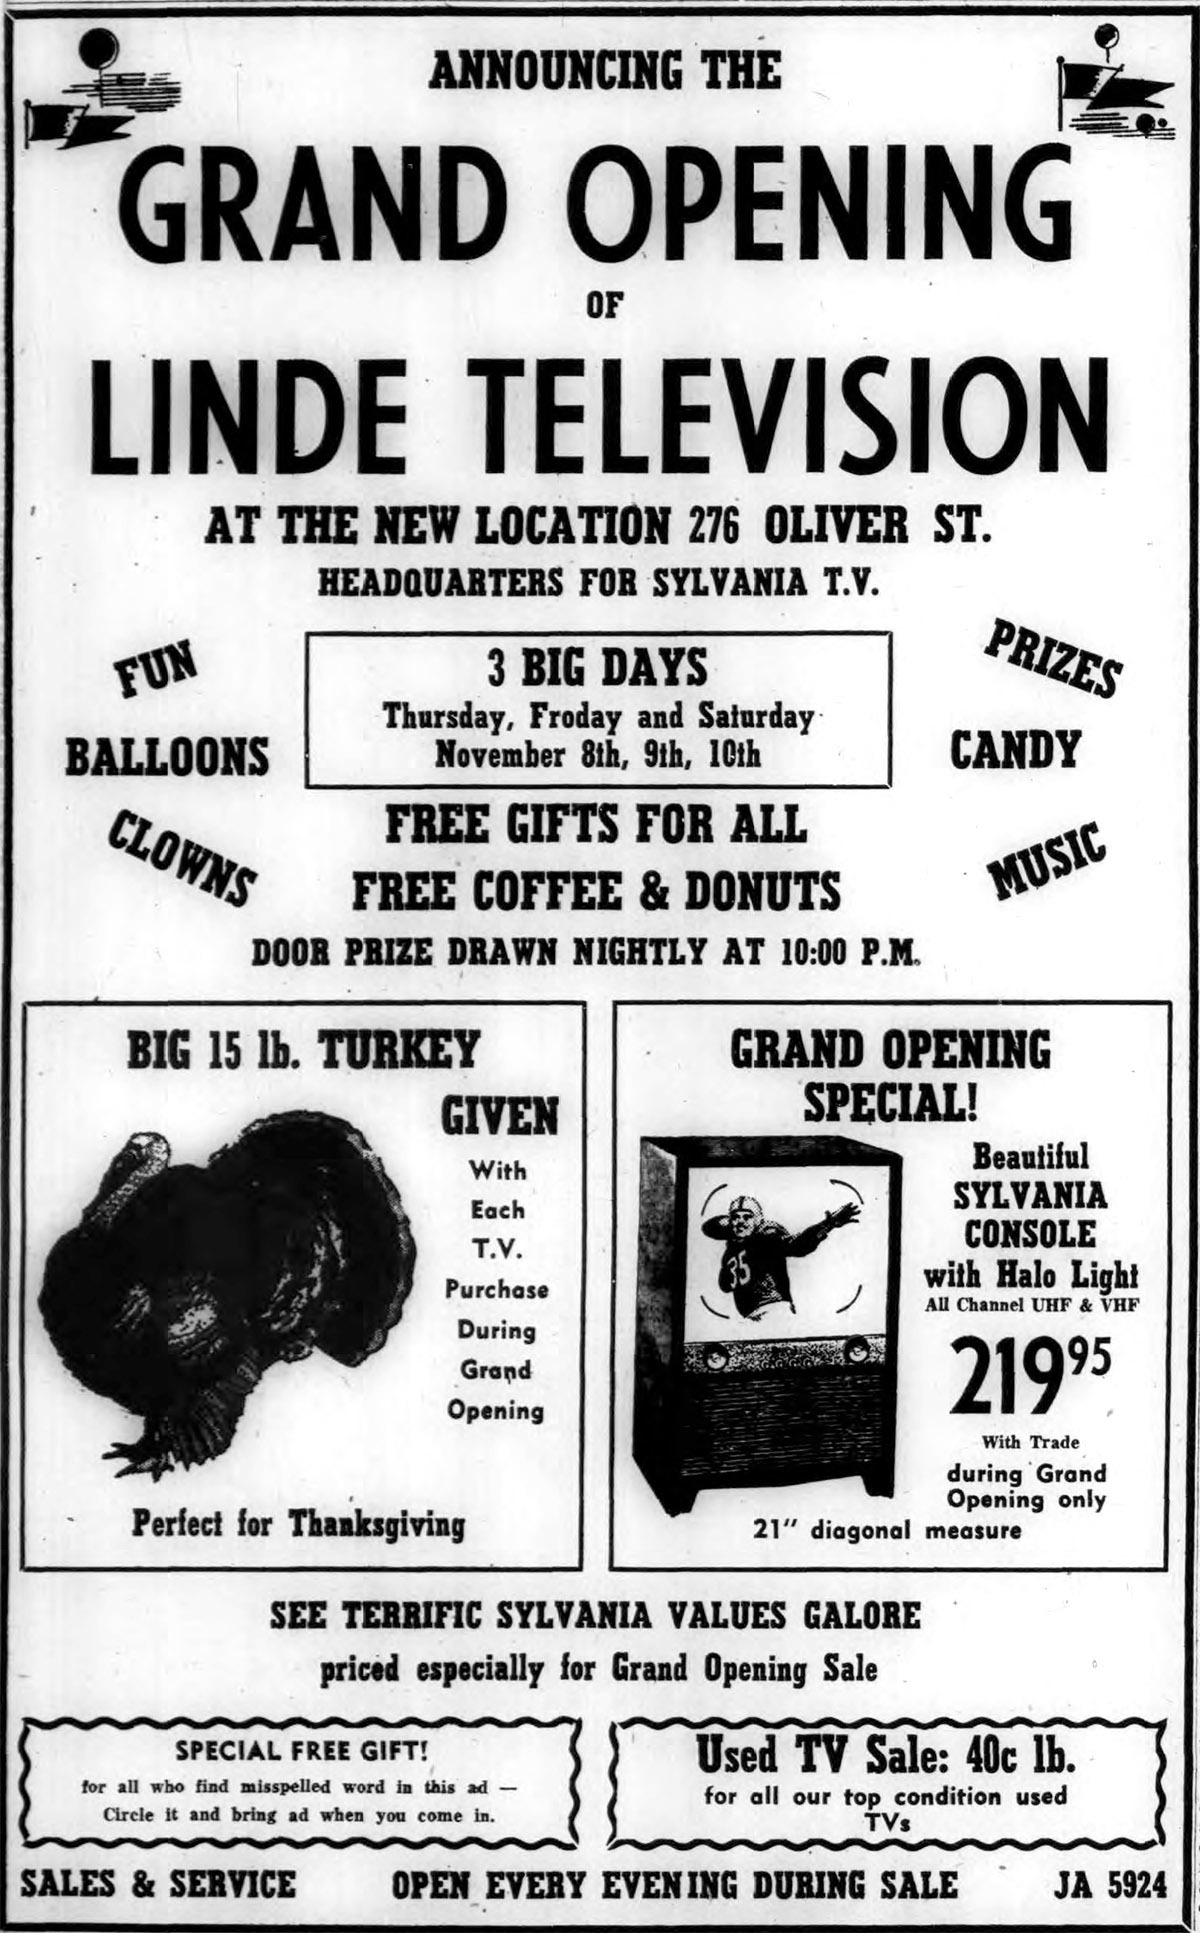 Linde Television 276 Oliver Grand Opening, ad (1956-11-07).jpg